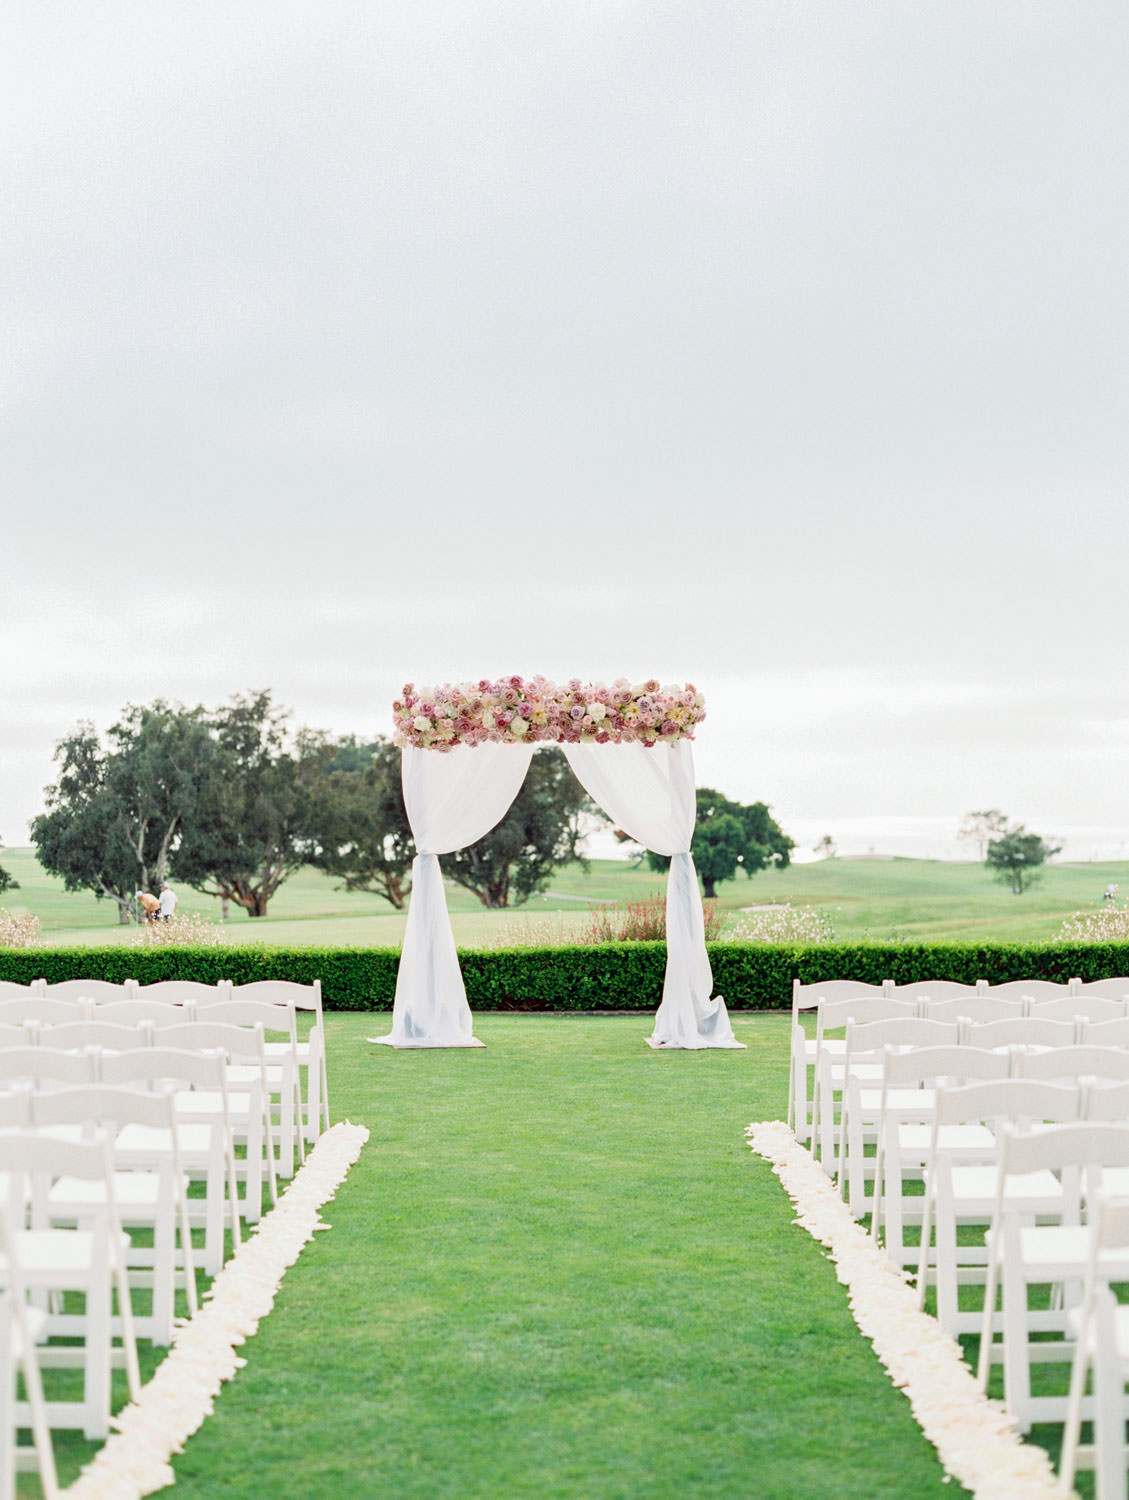 Ceremony on grassy lawn with white chairs, aisle arrangements with ivory, pink, and lavender arrangements, ceremony white draping with large arrangement of roses on top of the arch, Lodge at Torrey Pines wedding, film photography by Cavin Elizabeth Photography